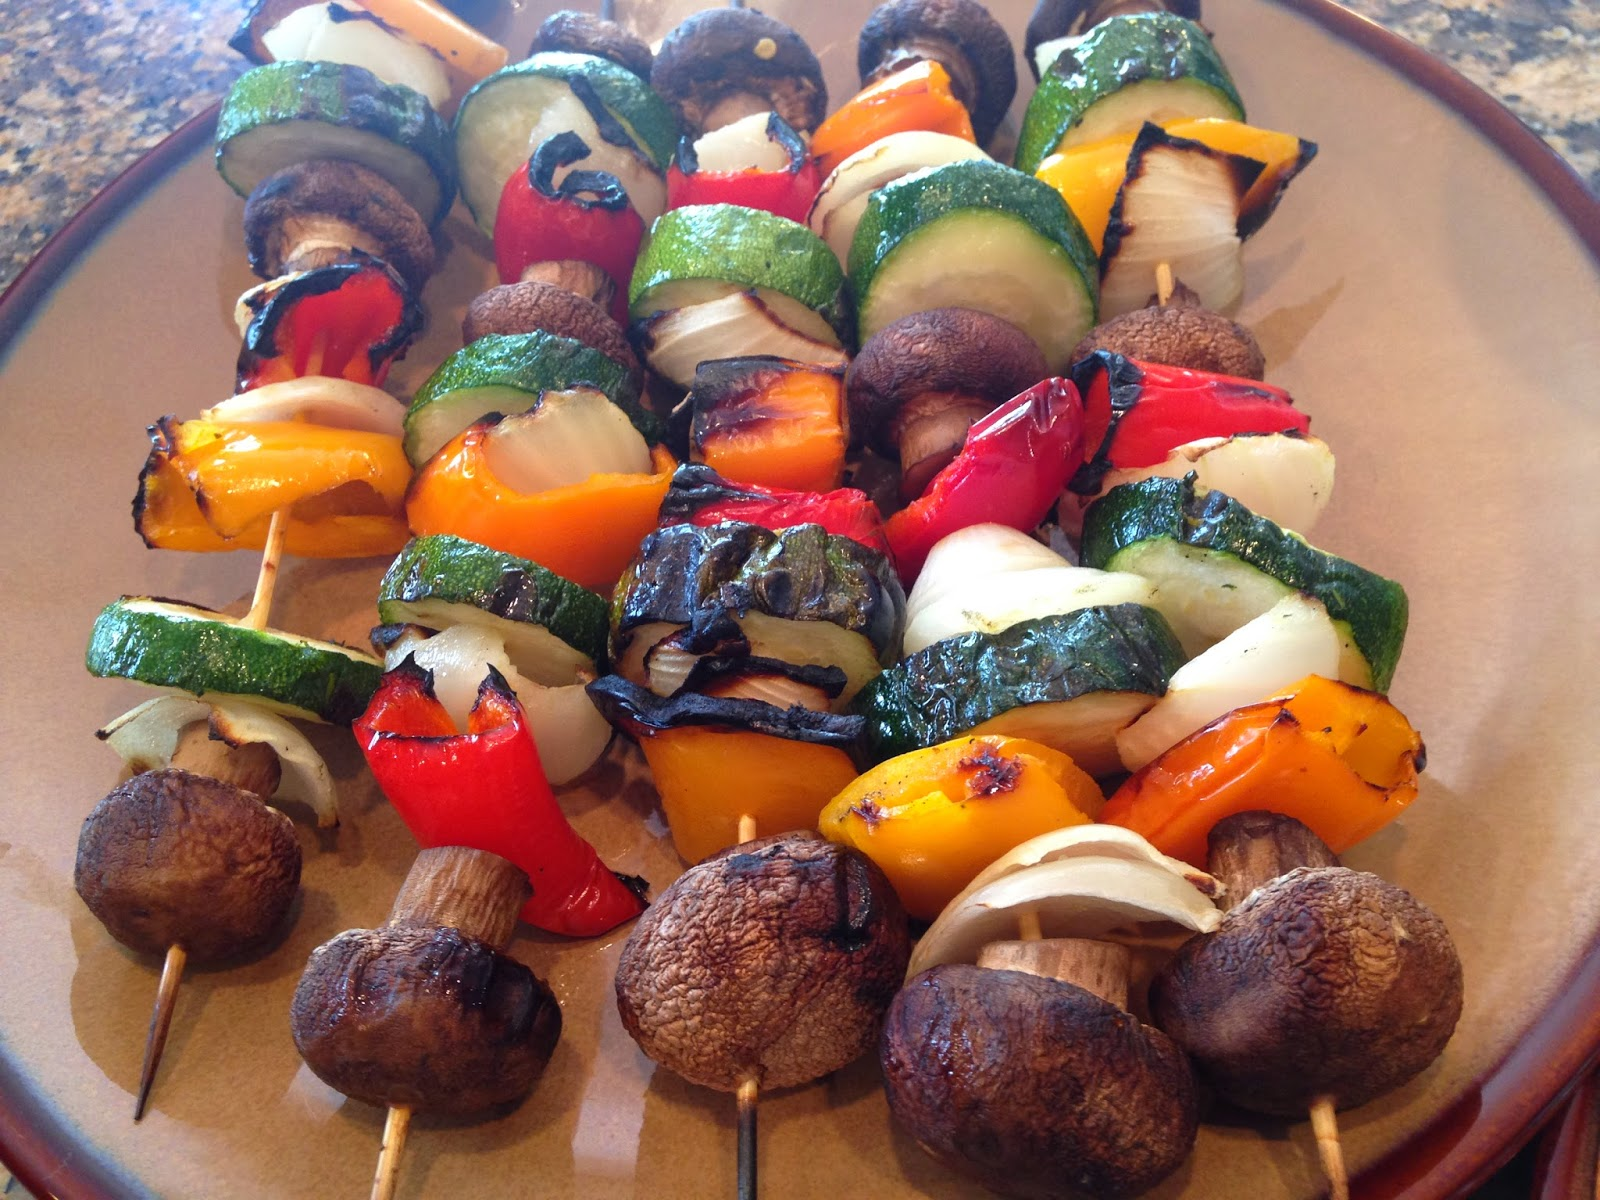 Deidra Penrose, clean eating, clean eating meal plan, healthy meal prepping, high protein diet, weight loss program, weight loss meal plan, healthy mom, fitness motivation, accountability, meal prep, NPC figure, fitness nurse, healthy mom, veggie kabobs, vegan, healthy cooking, NPC figure meal plan, NPC figure competition, NPC figure prep, weight loss ideas, healthy meal ideas, healthy dinner ideas, healthy meal plans